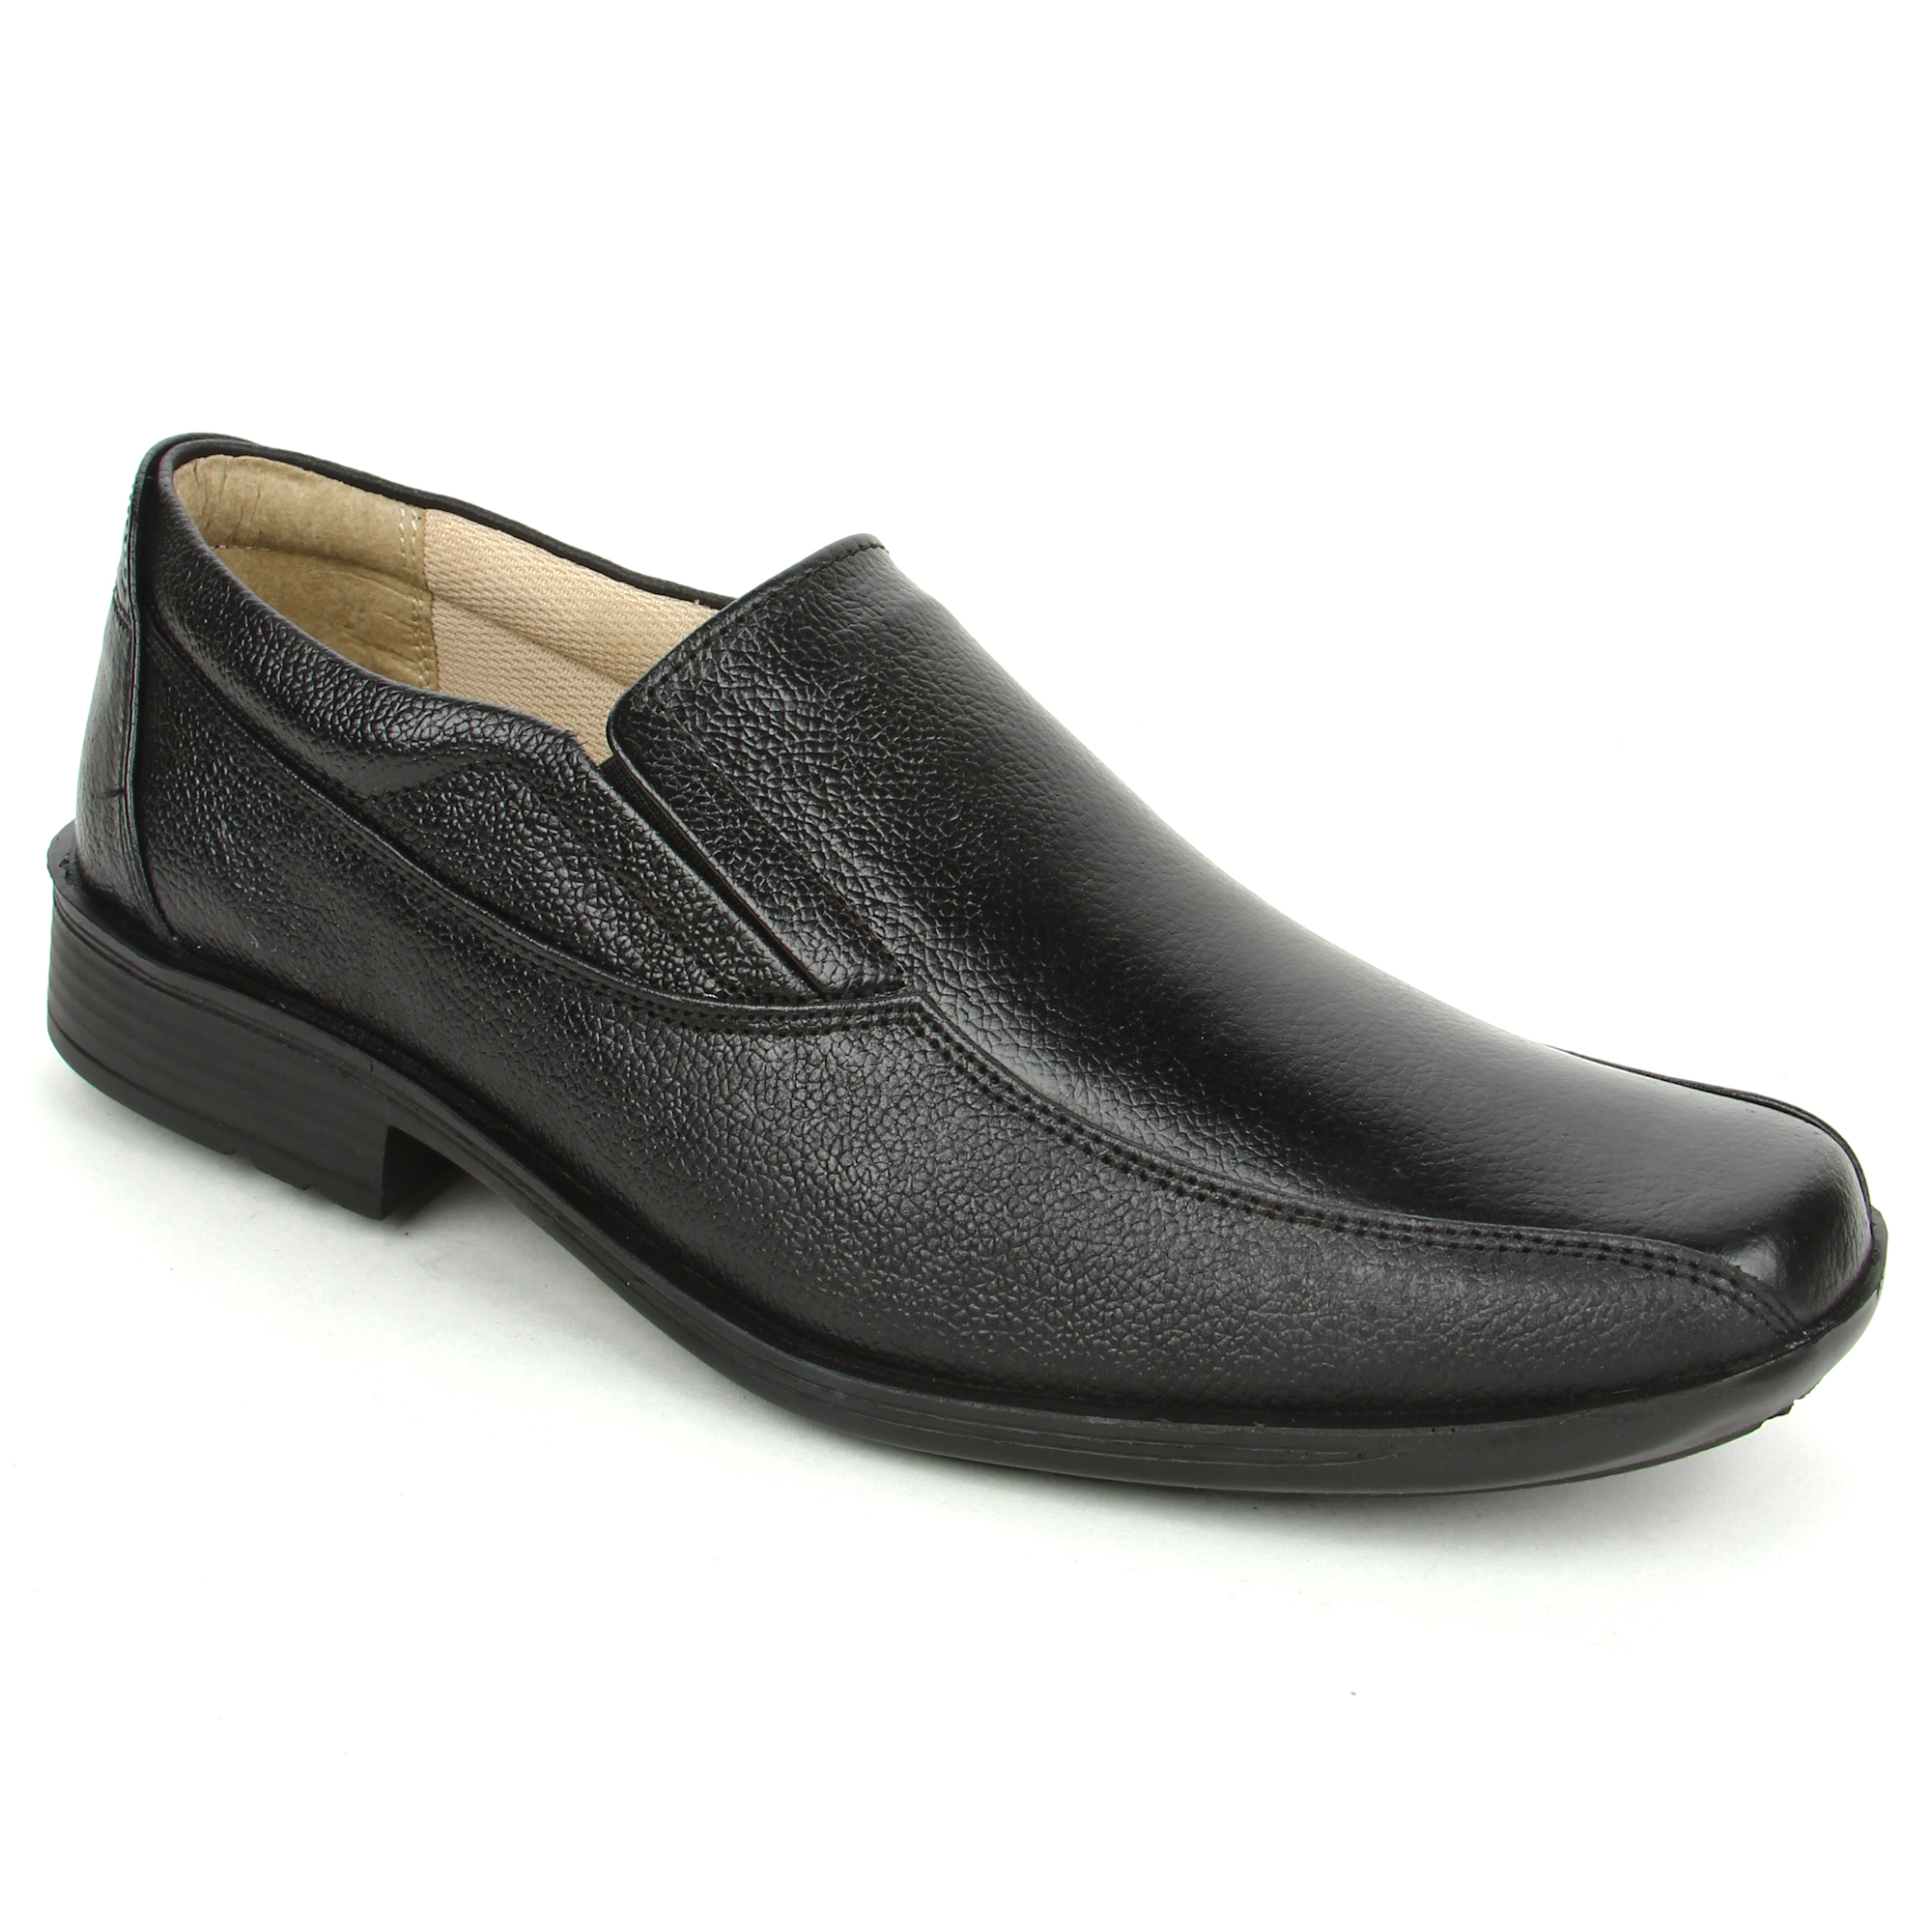 Liberty   Liberty Gliders Black Formal Oxfords Shoes SANDRO-10_Black For - Men